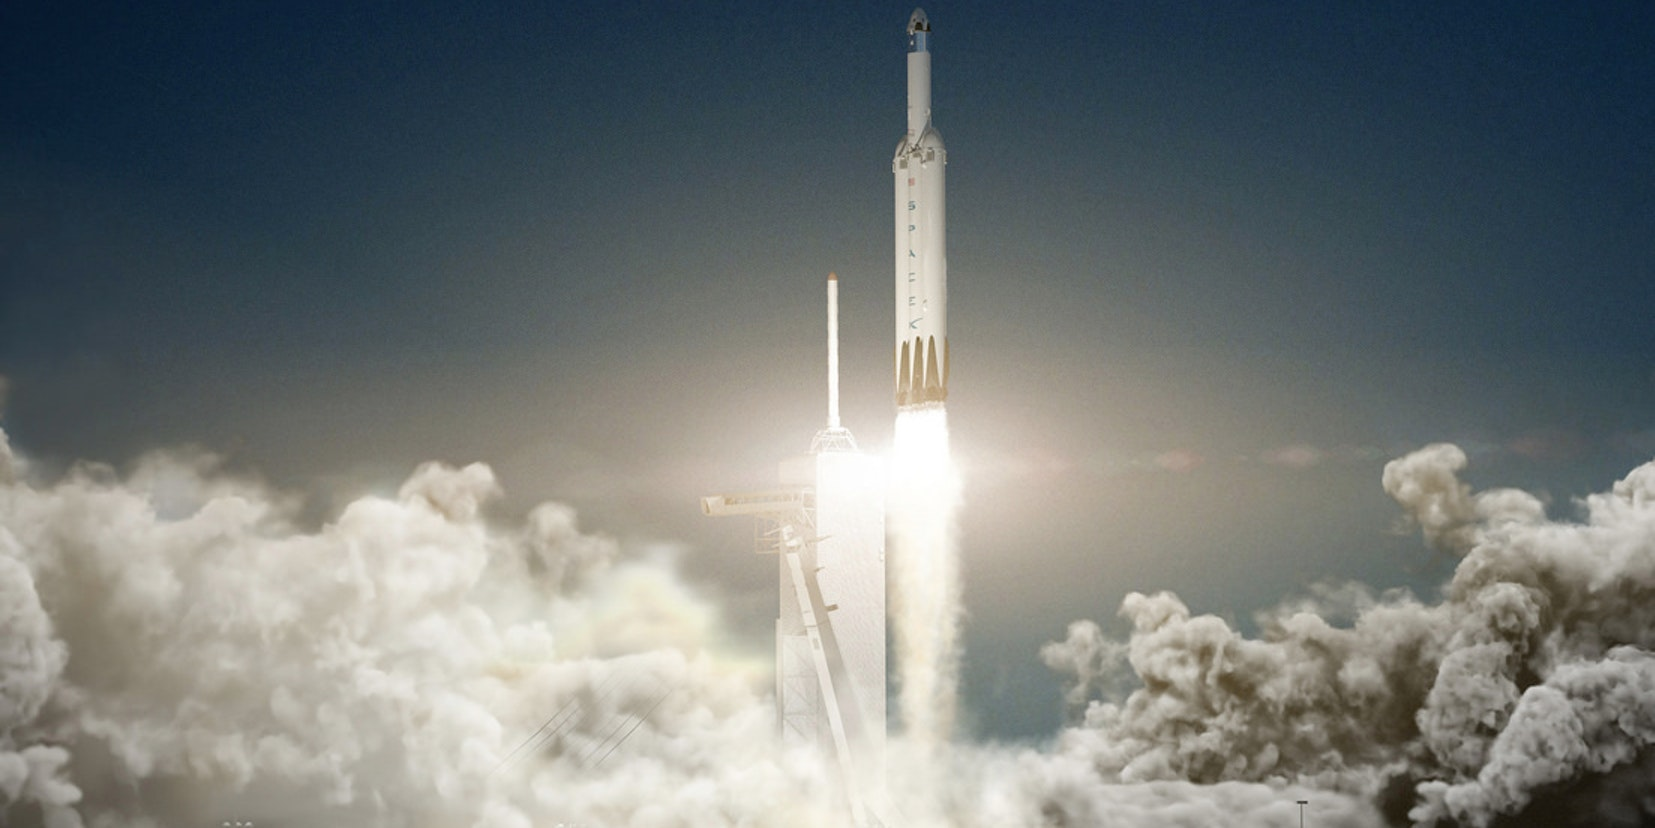 SpaceX says by late next year, the Falcon Heavy will launch two astronauts to the moon.